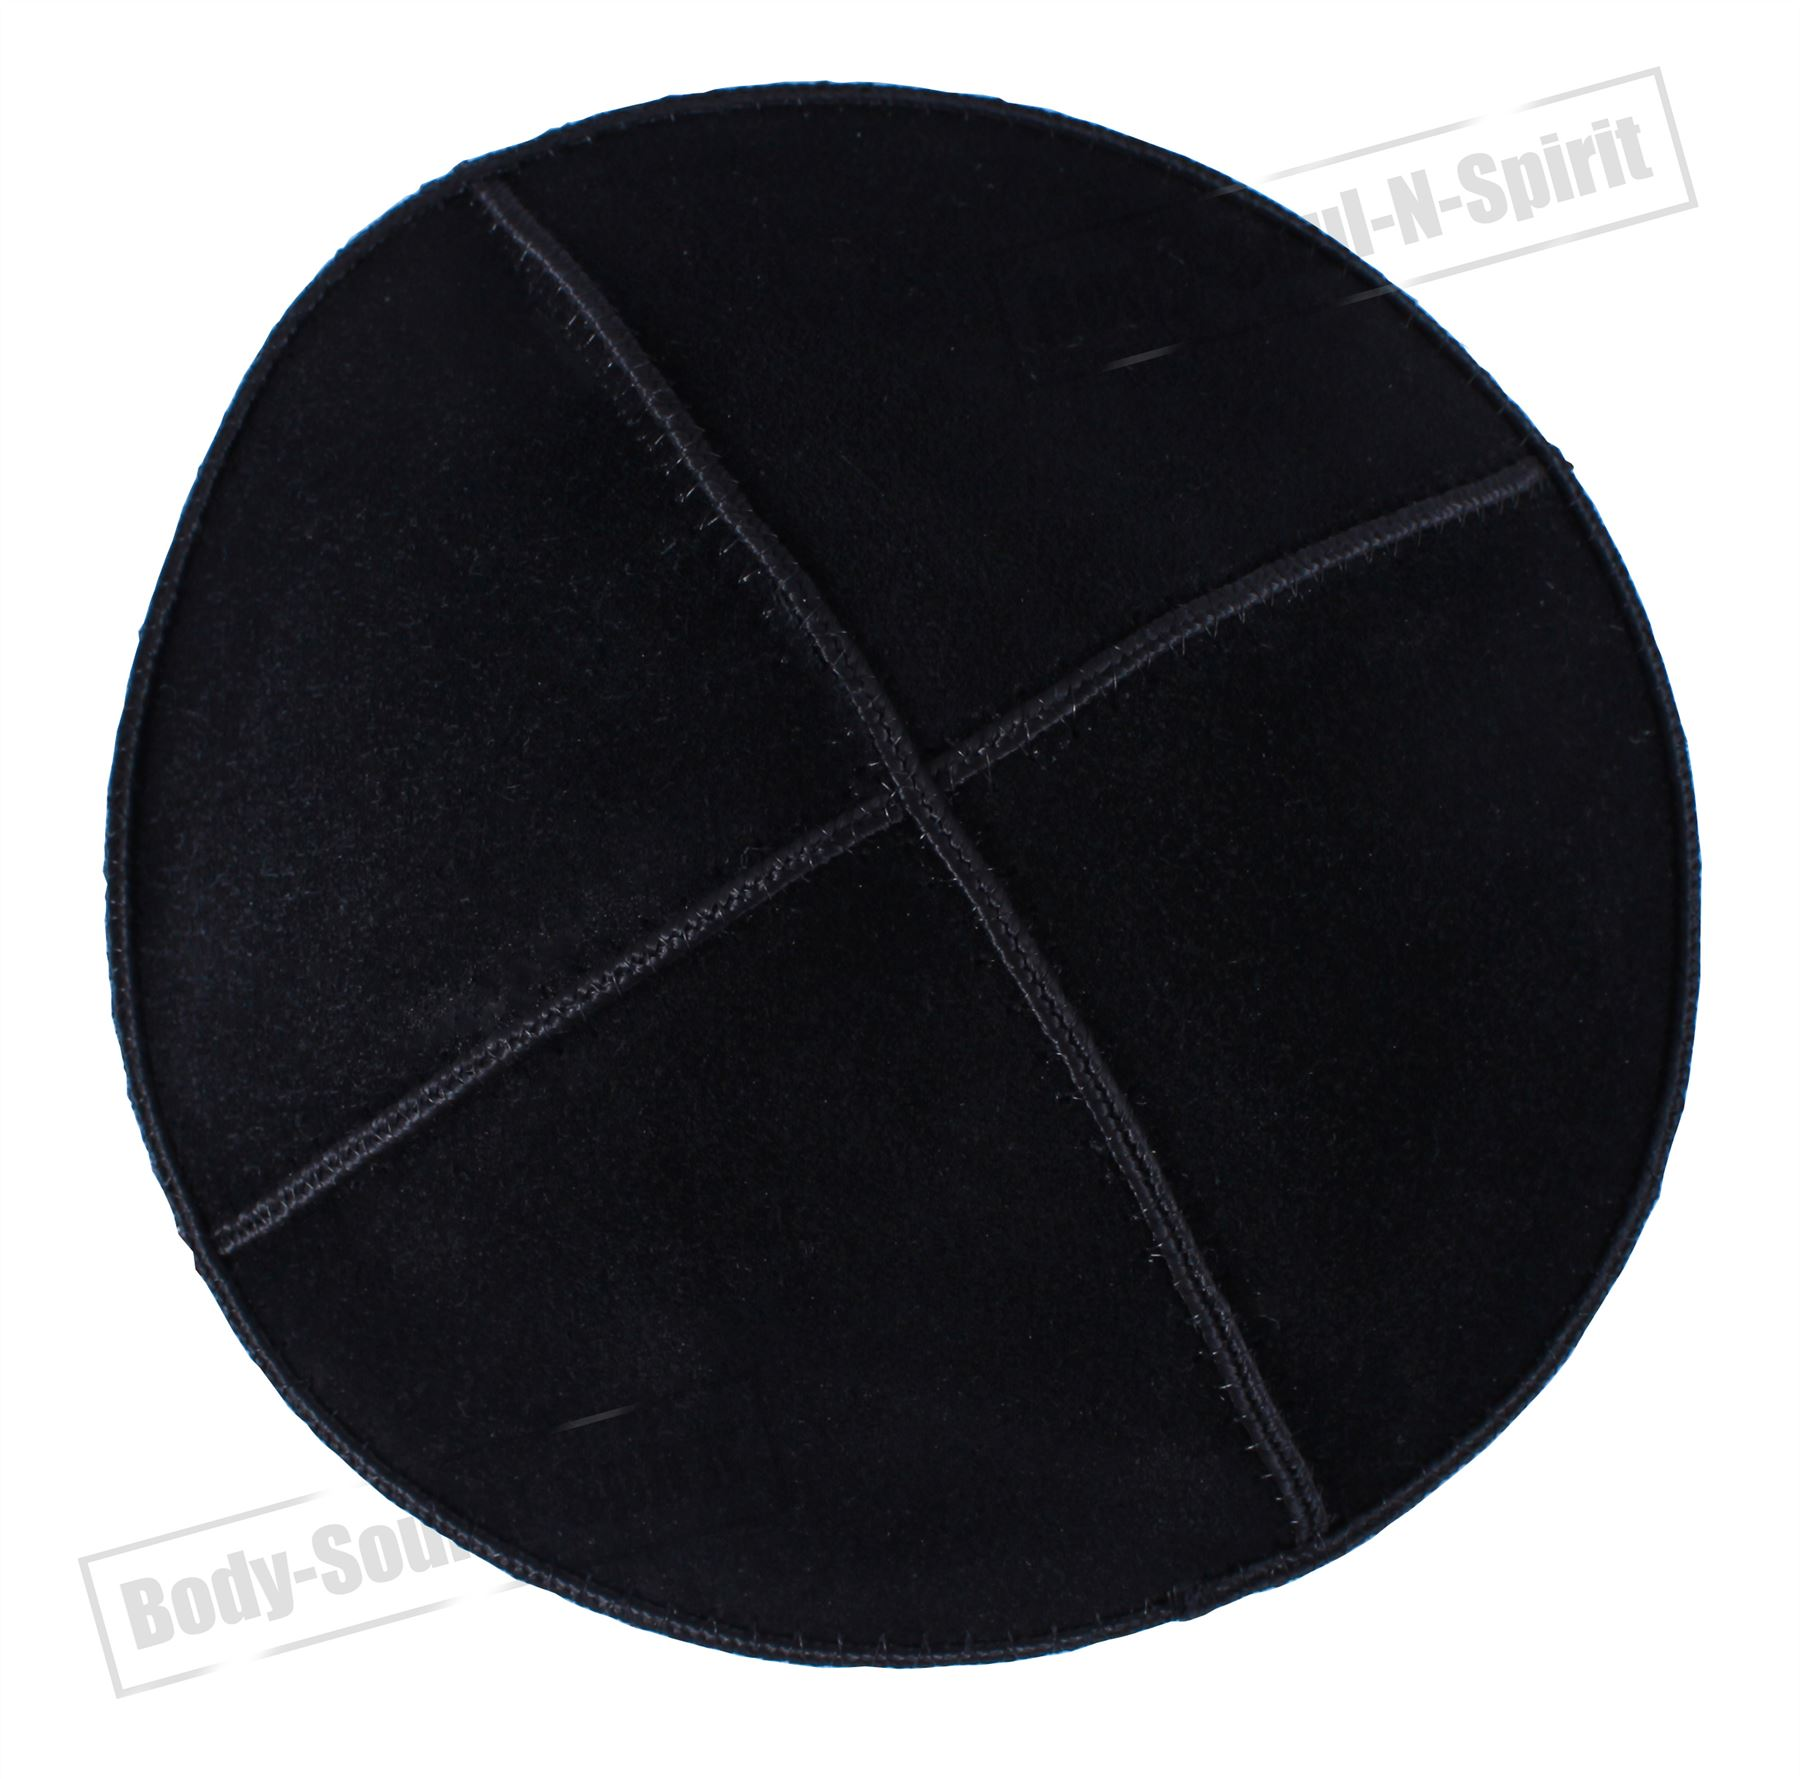 Black leather Beanie Kippah Yarmulke Kippa Israel Tribal Jewish Hat ...